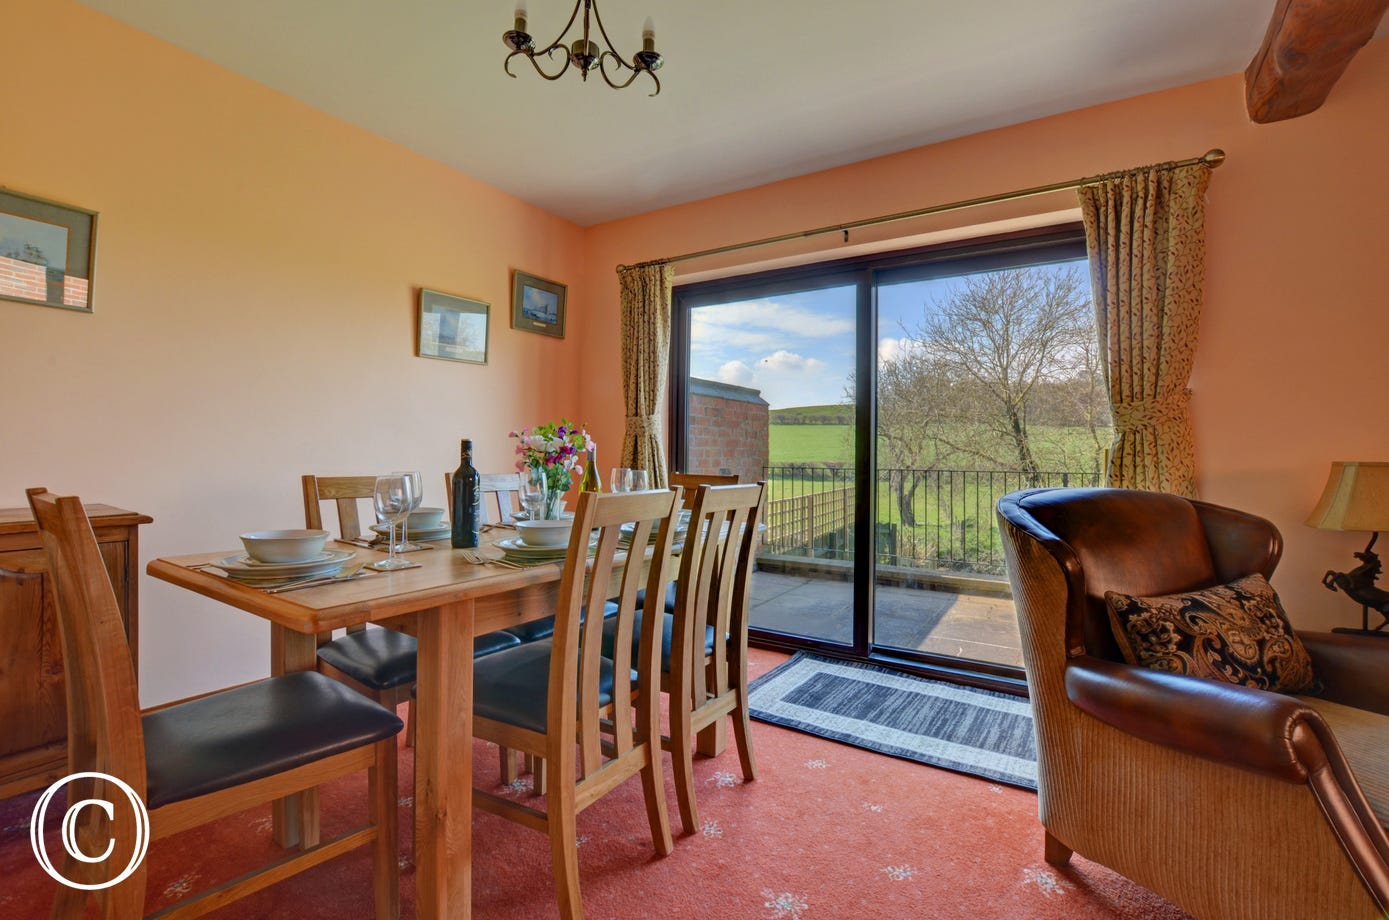 The dining area with a table and chairs has French doors leading to the raised patio area and lovely views